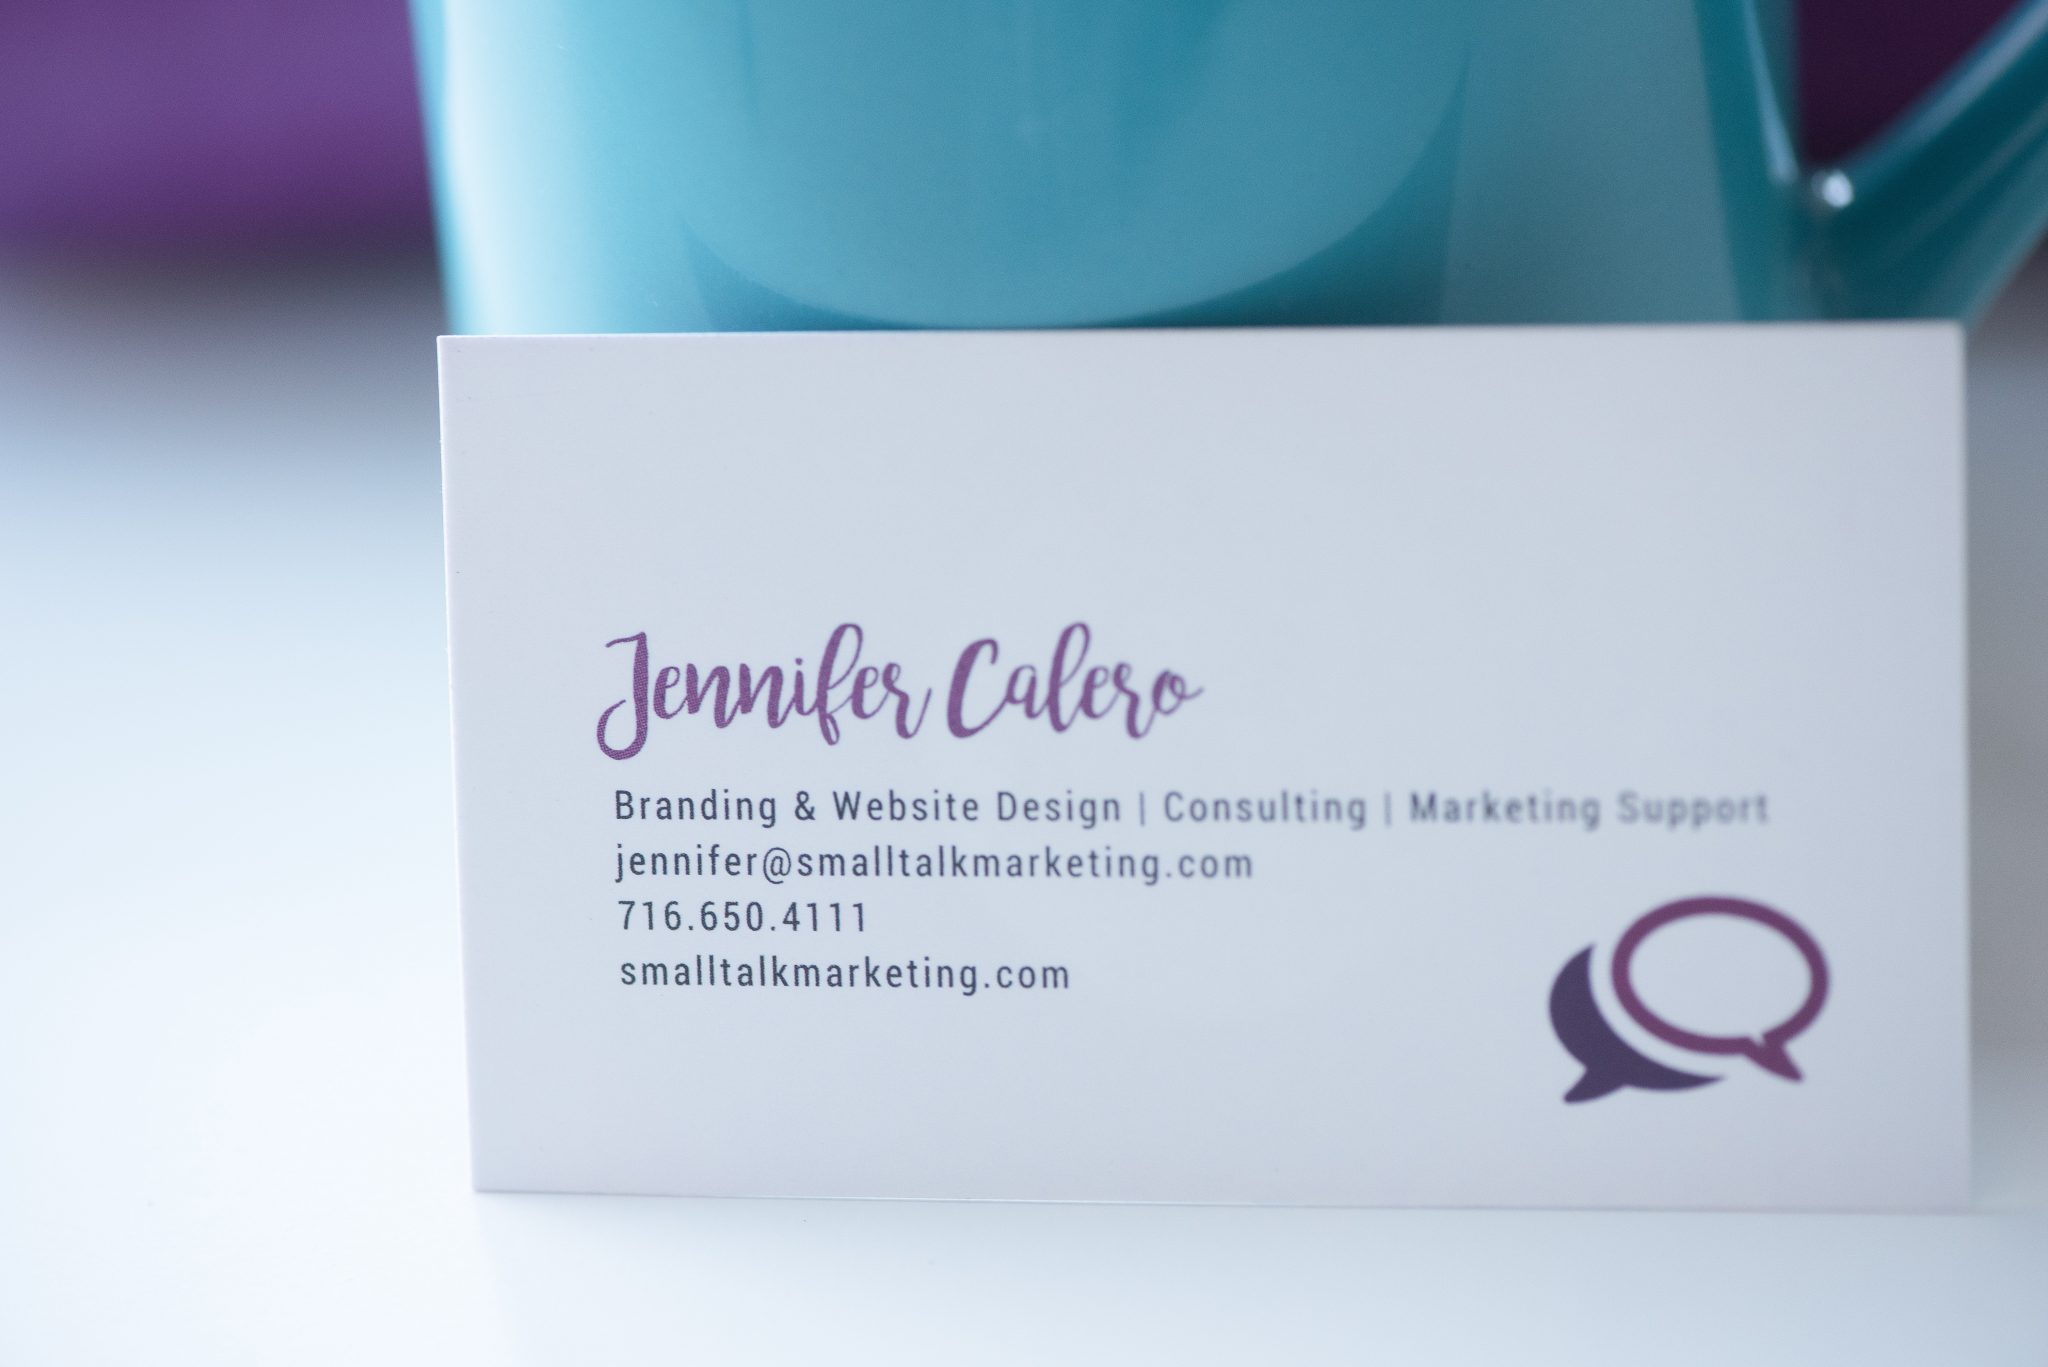 Jennifer Calero and Small Talk Marketing